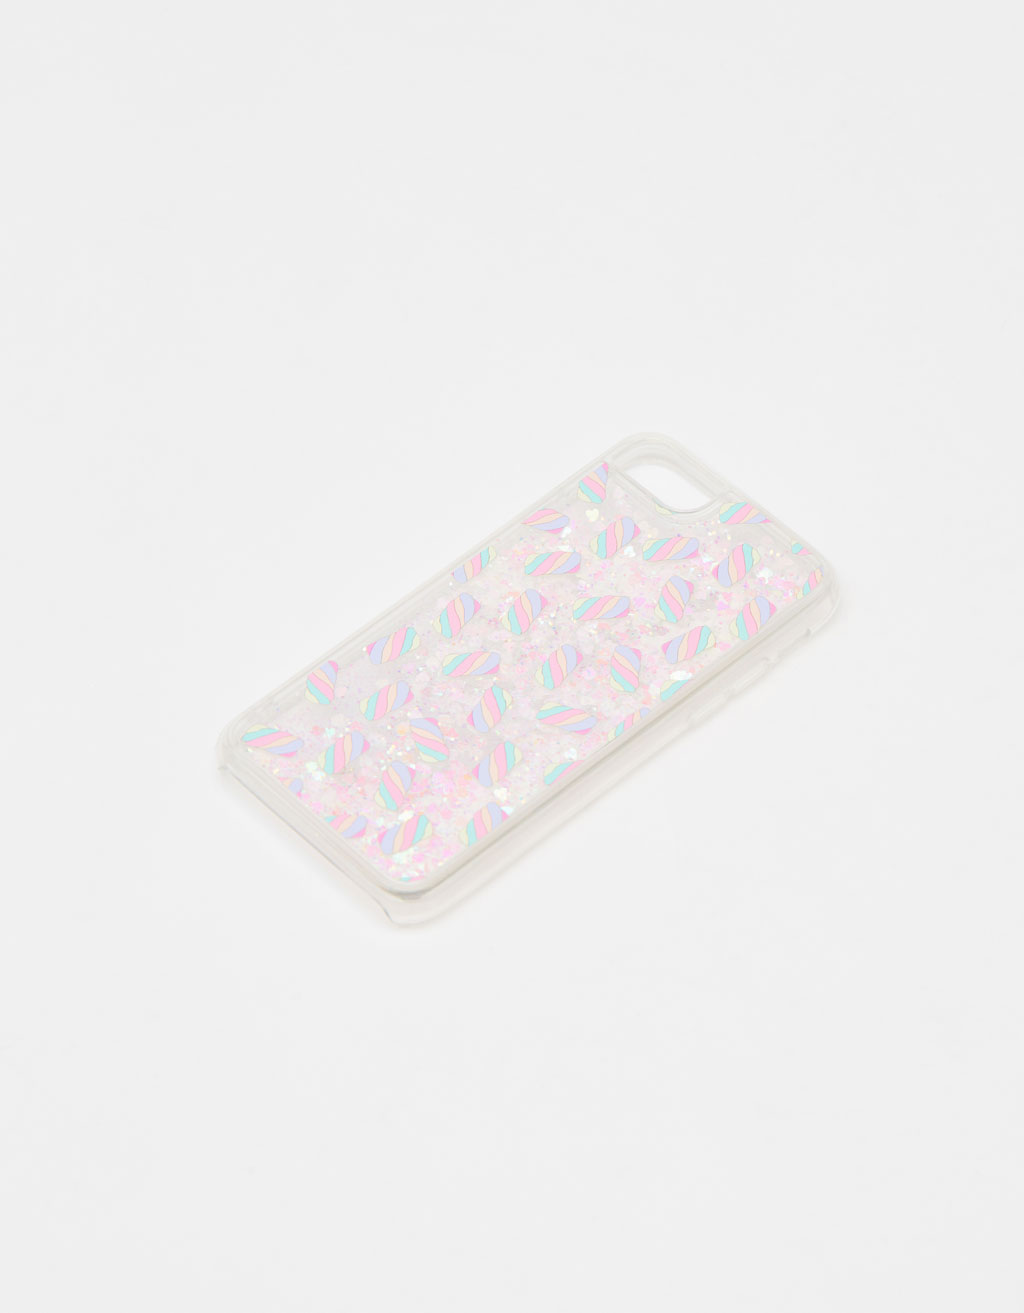 Glittery iPhone 6 / 6S / 7 / 8 case